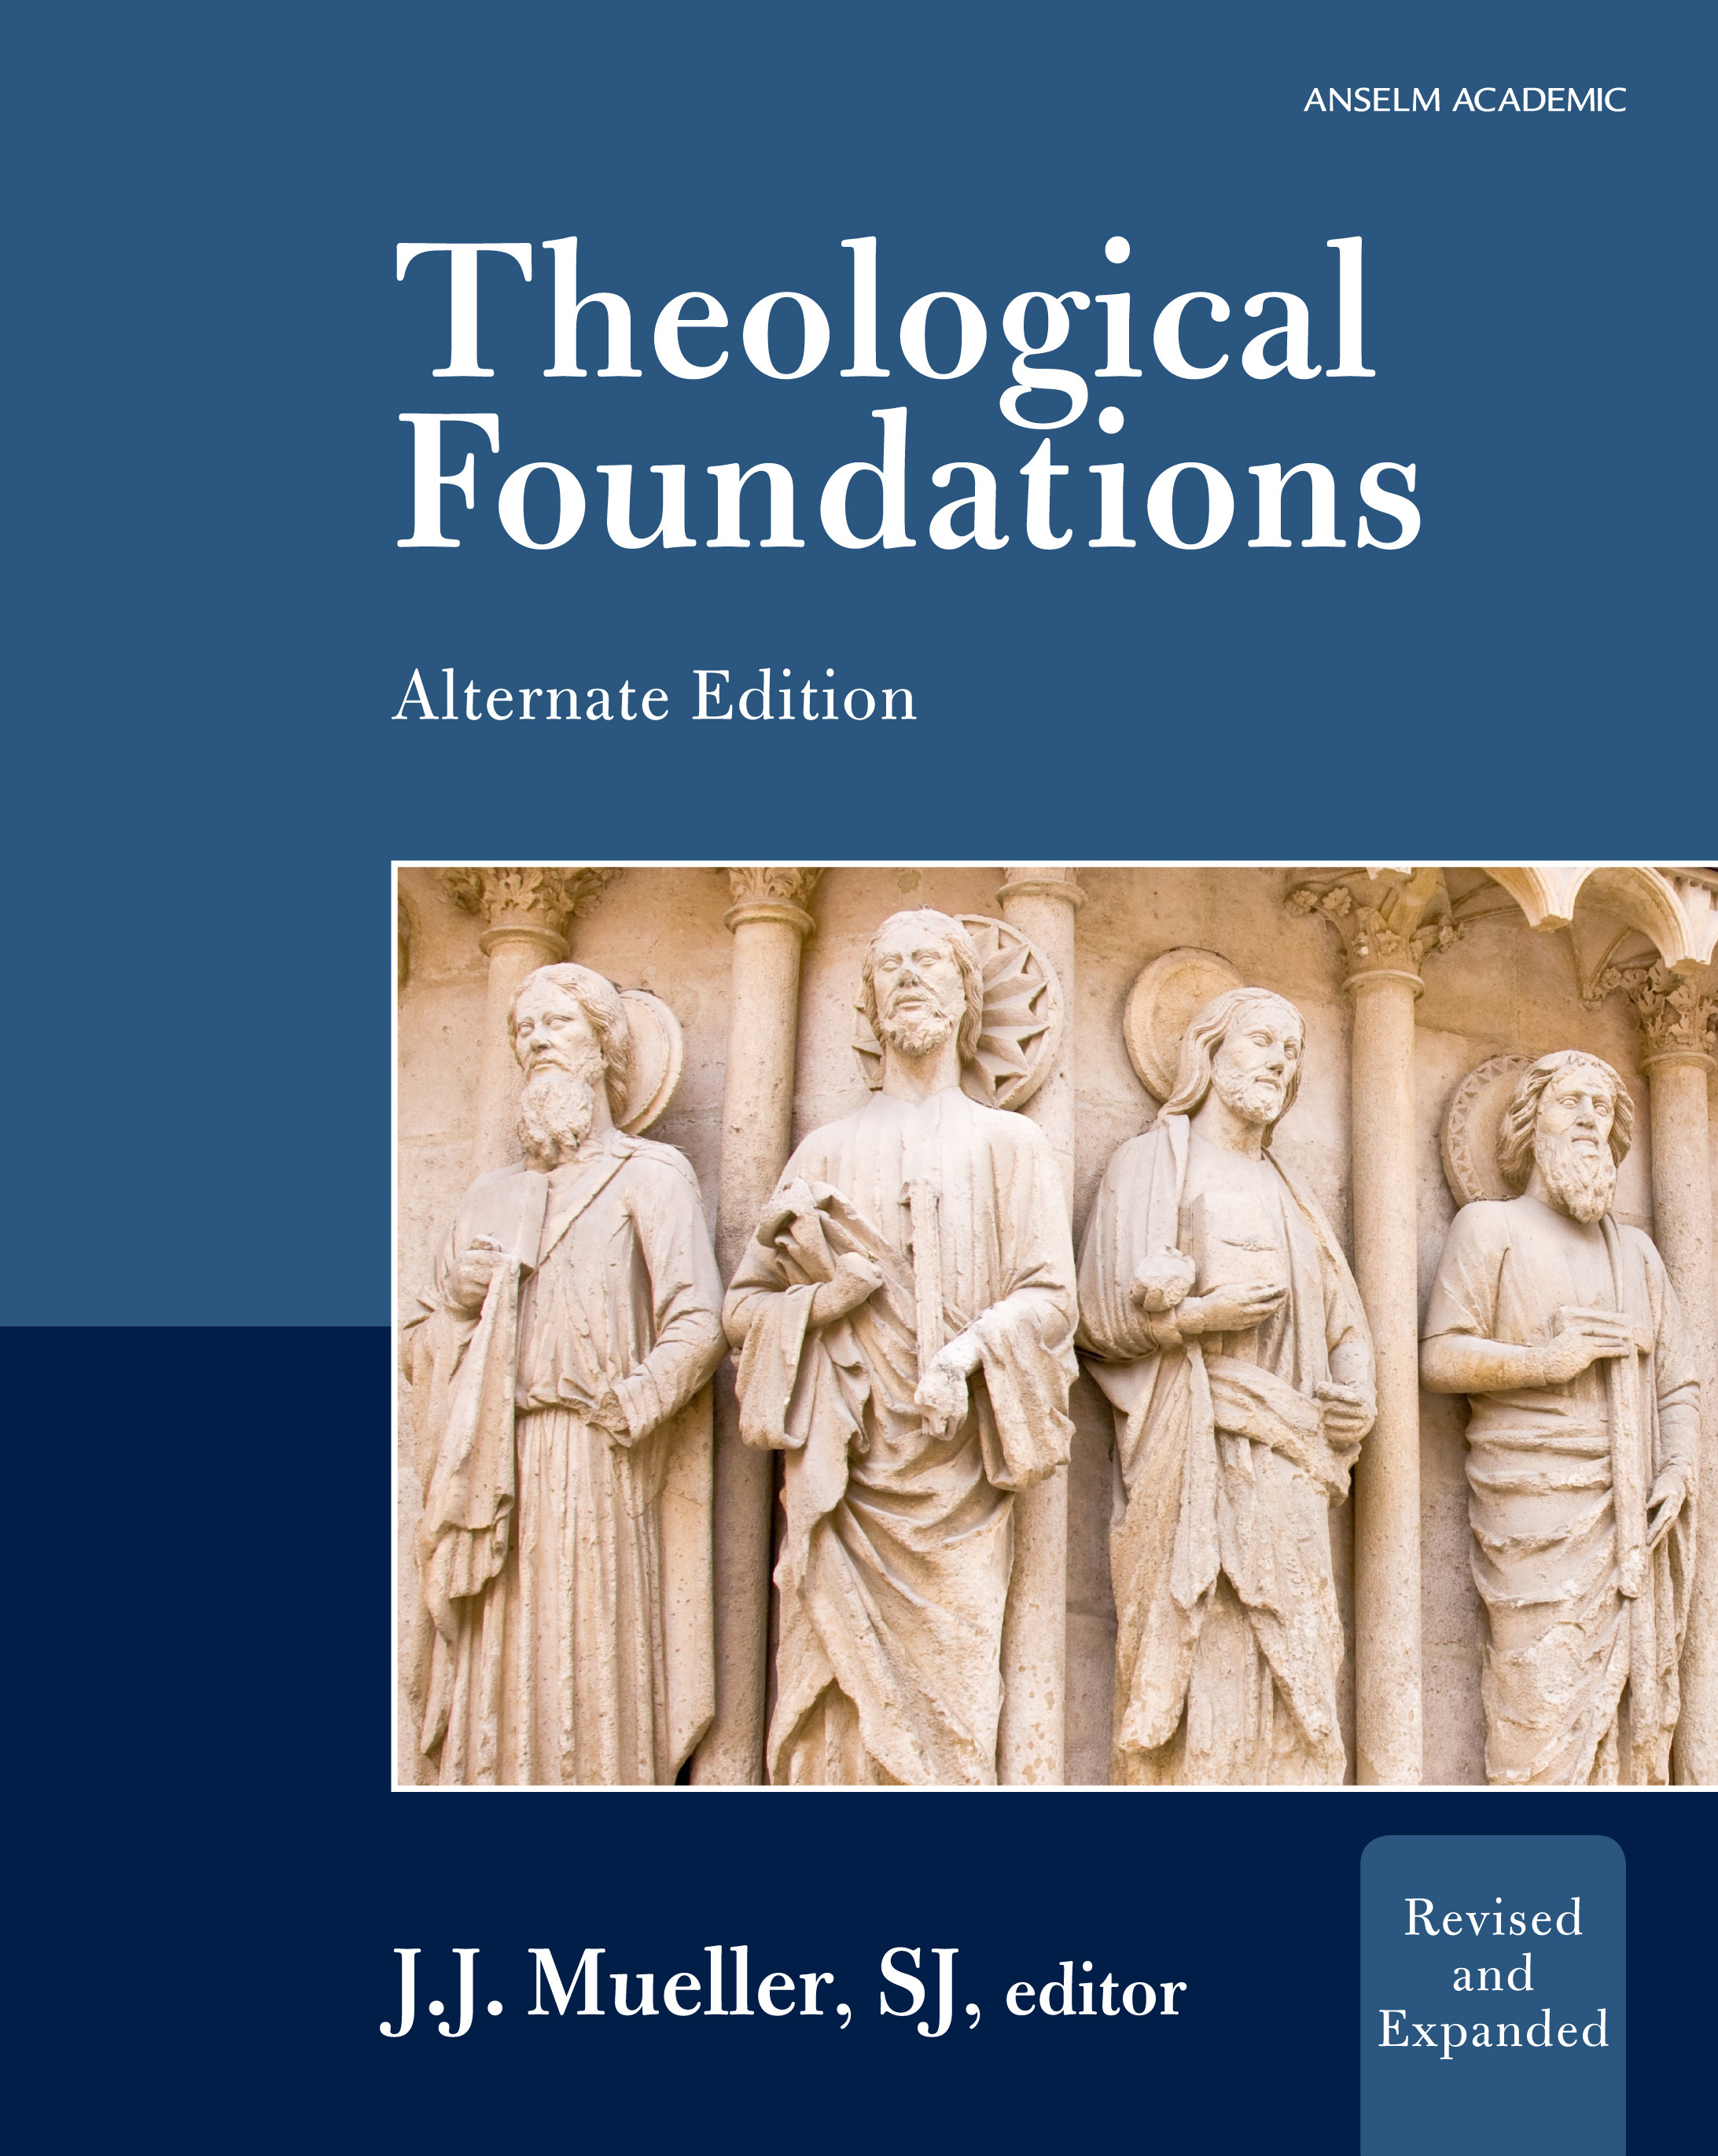 Theological Foundations: Concepts and Methods for Understanding Christian Faith - Revised Alternate